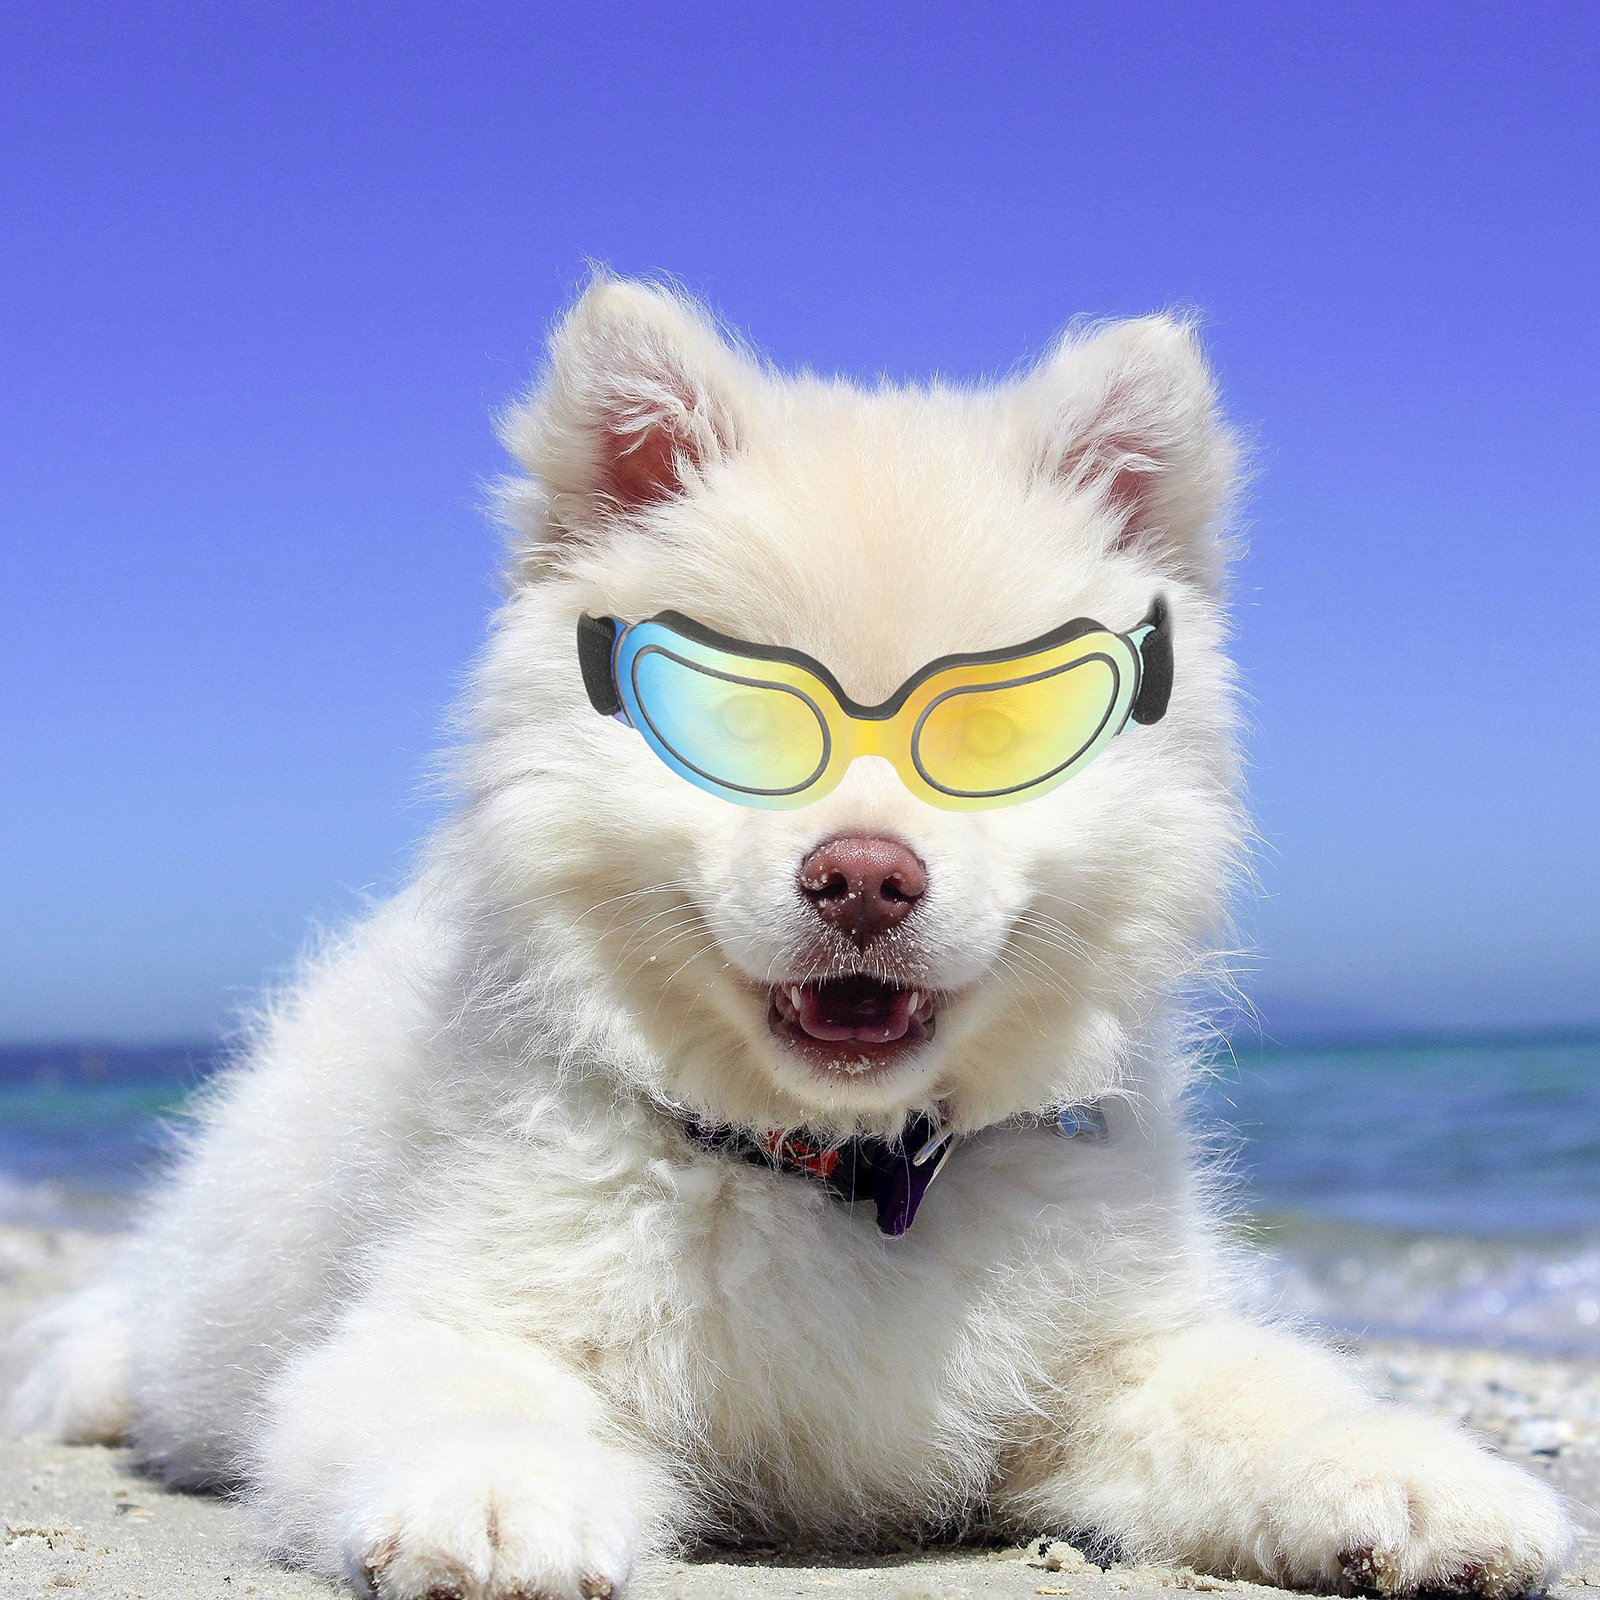 Vevins Dog Goggles Pet Sunglass Adjustable UV Protection Waterproof Eyewear for Puppy Doggie Cat Small Colorful